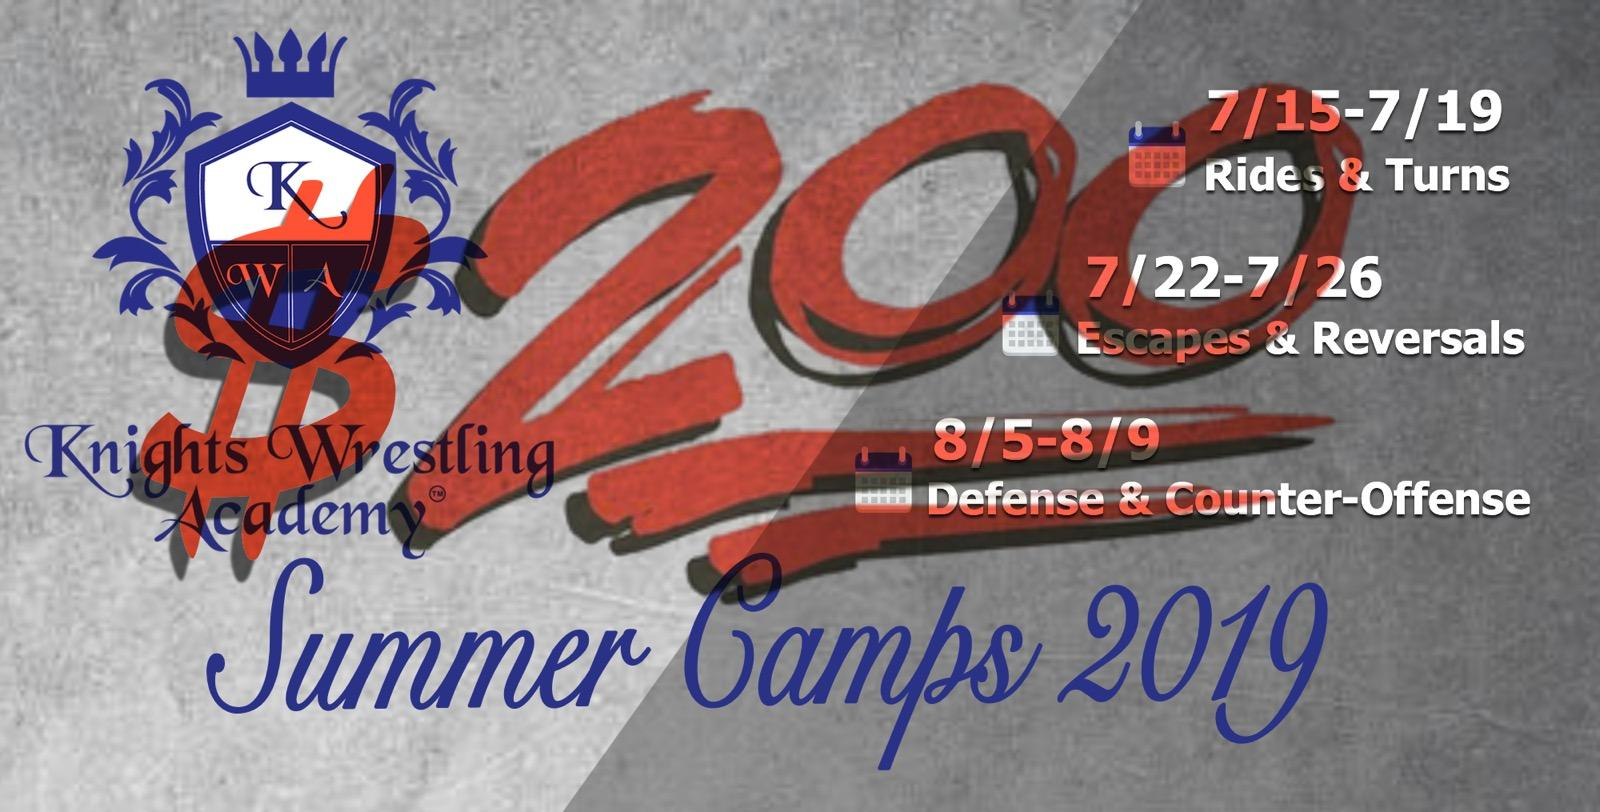 #GetKnighted this Summer! - Join the KWA for some fun on the mat with high-level, technical instruction!Recommended Ages: 9 Years & Up